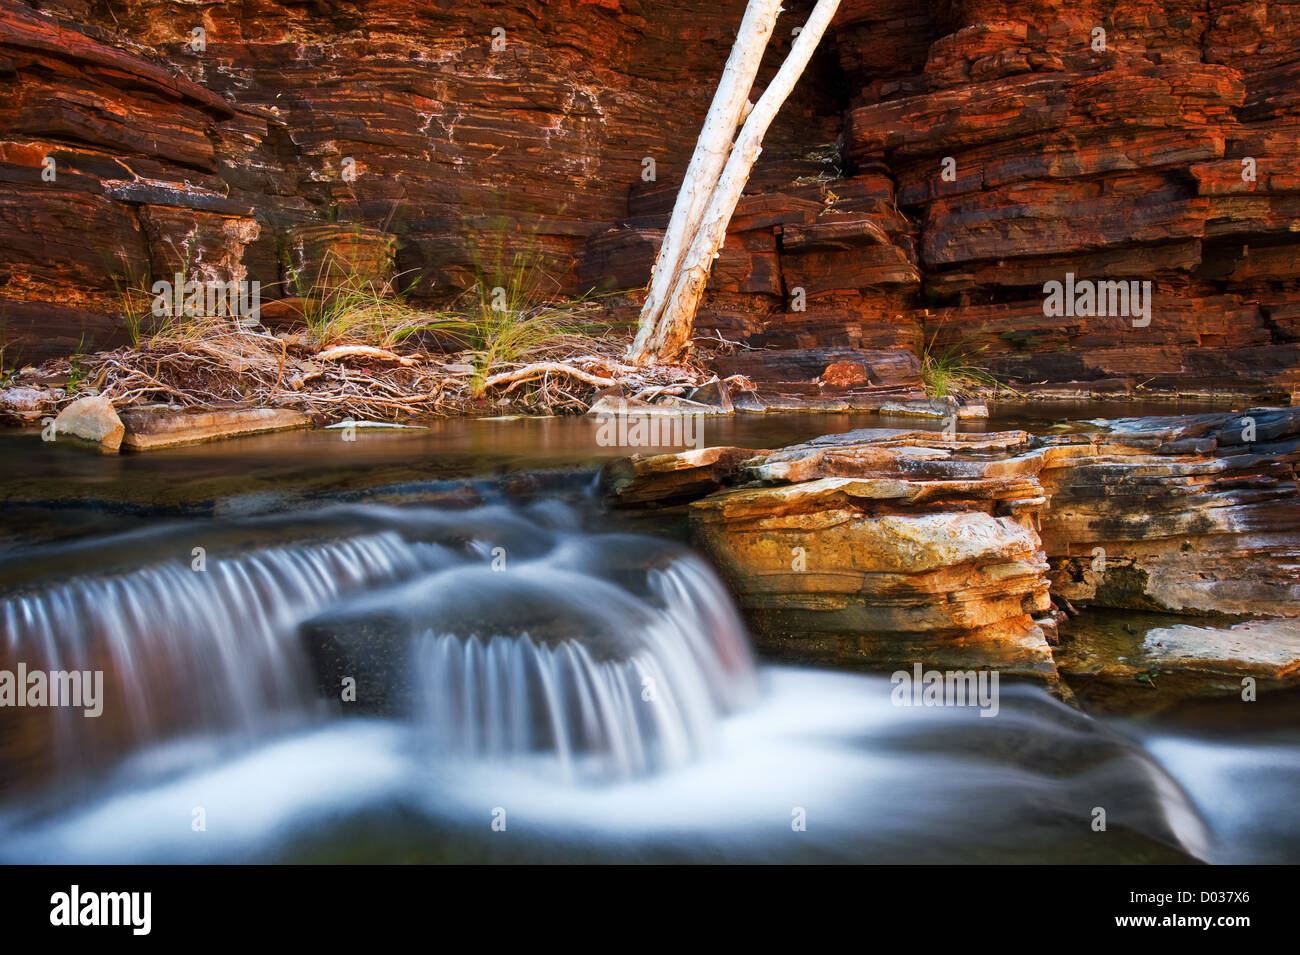 Cascades in Kalamina Gorge. - Stock Image